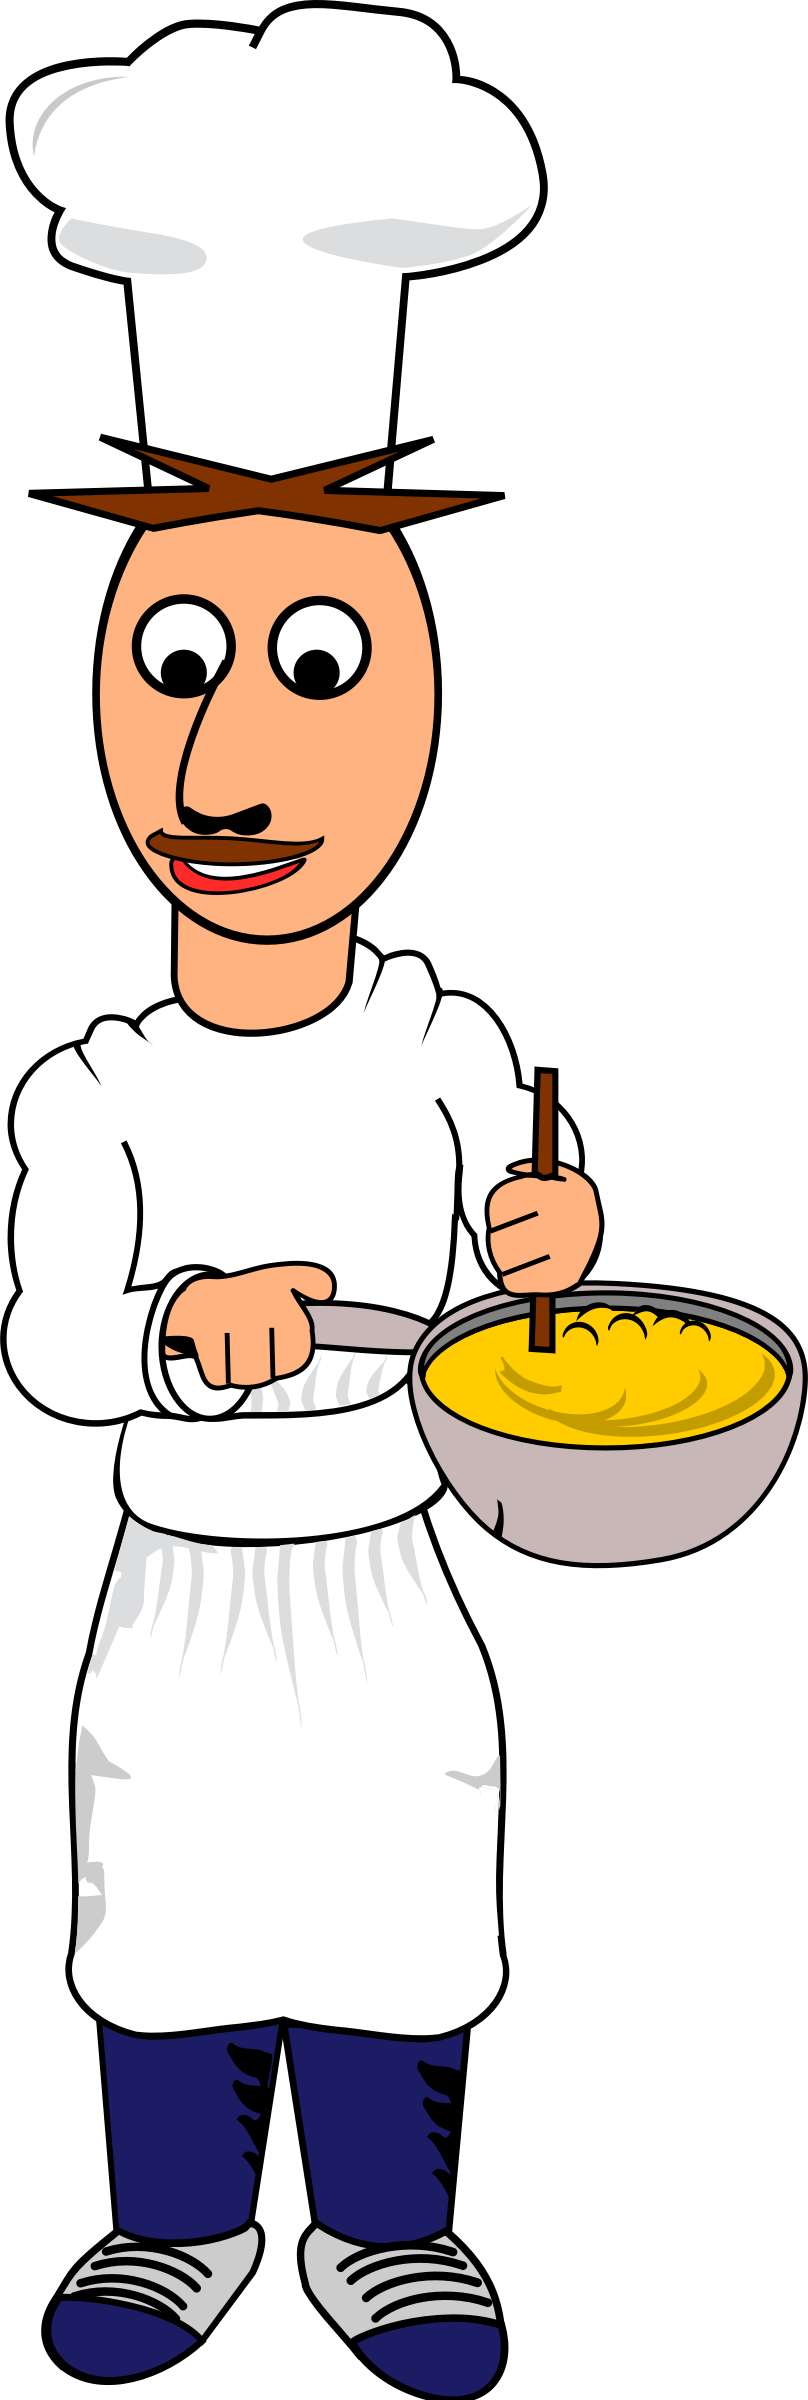 Free Male Cook Cliparts, Download Free Clip Art, Free Clip.